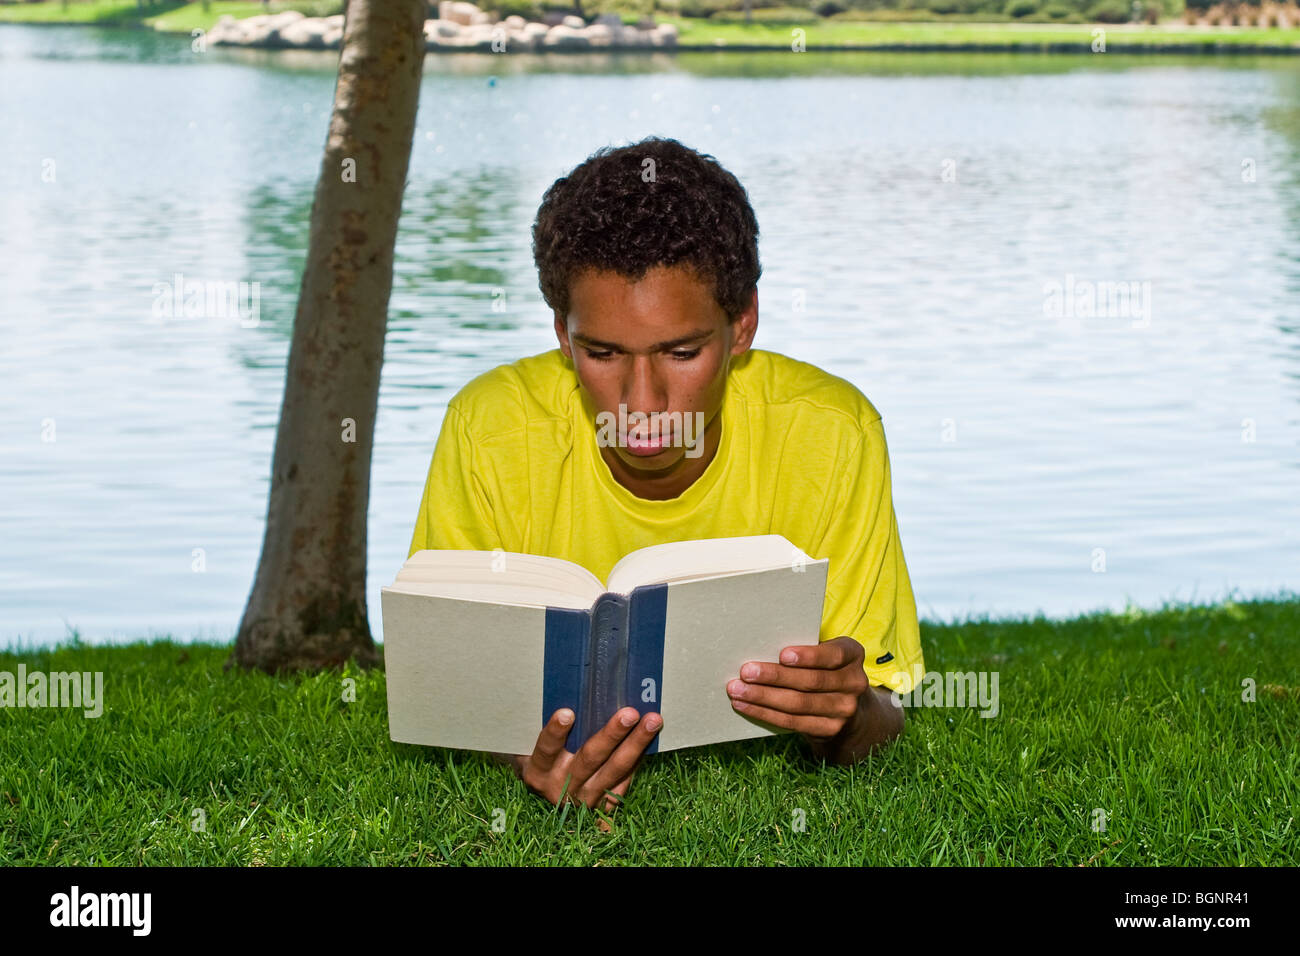 young person 16-17 year old teenage boy young man relaxing relaxes reading in park under tree shade front view  Stock Photo